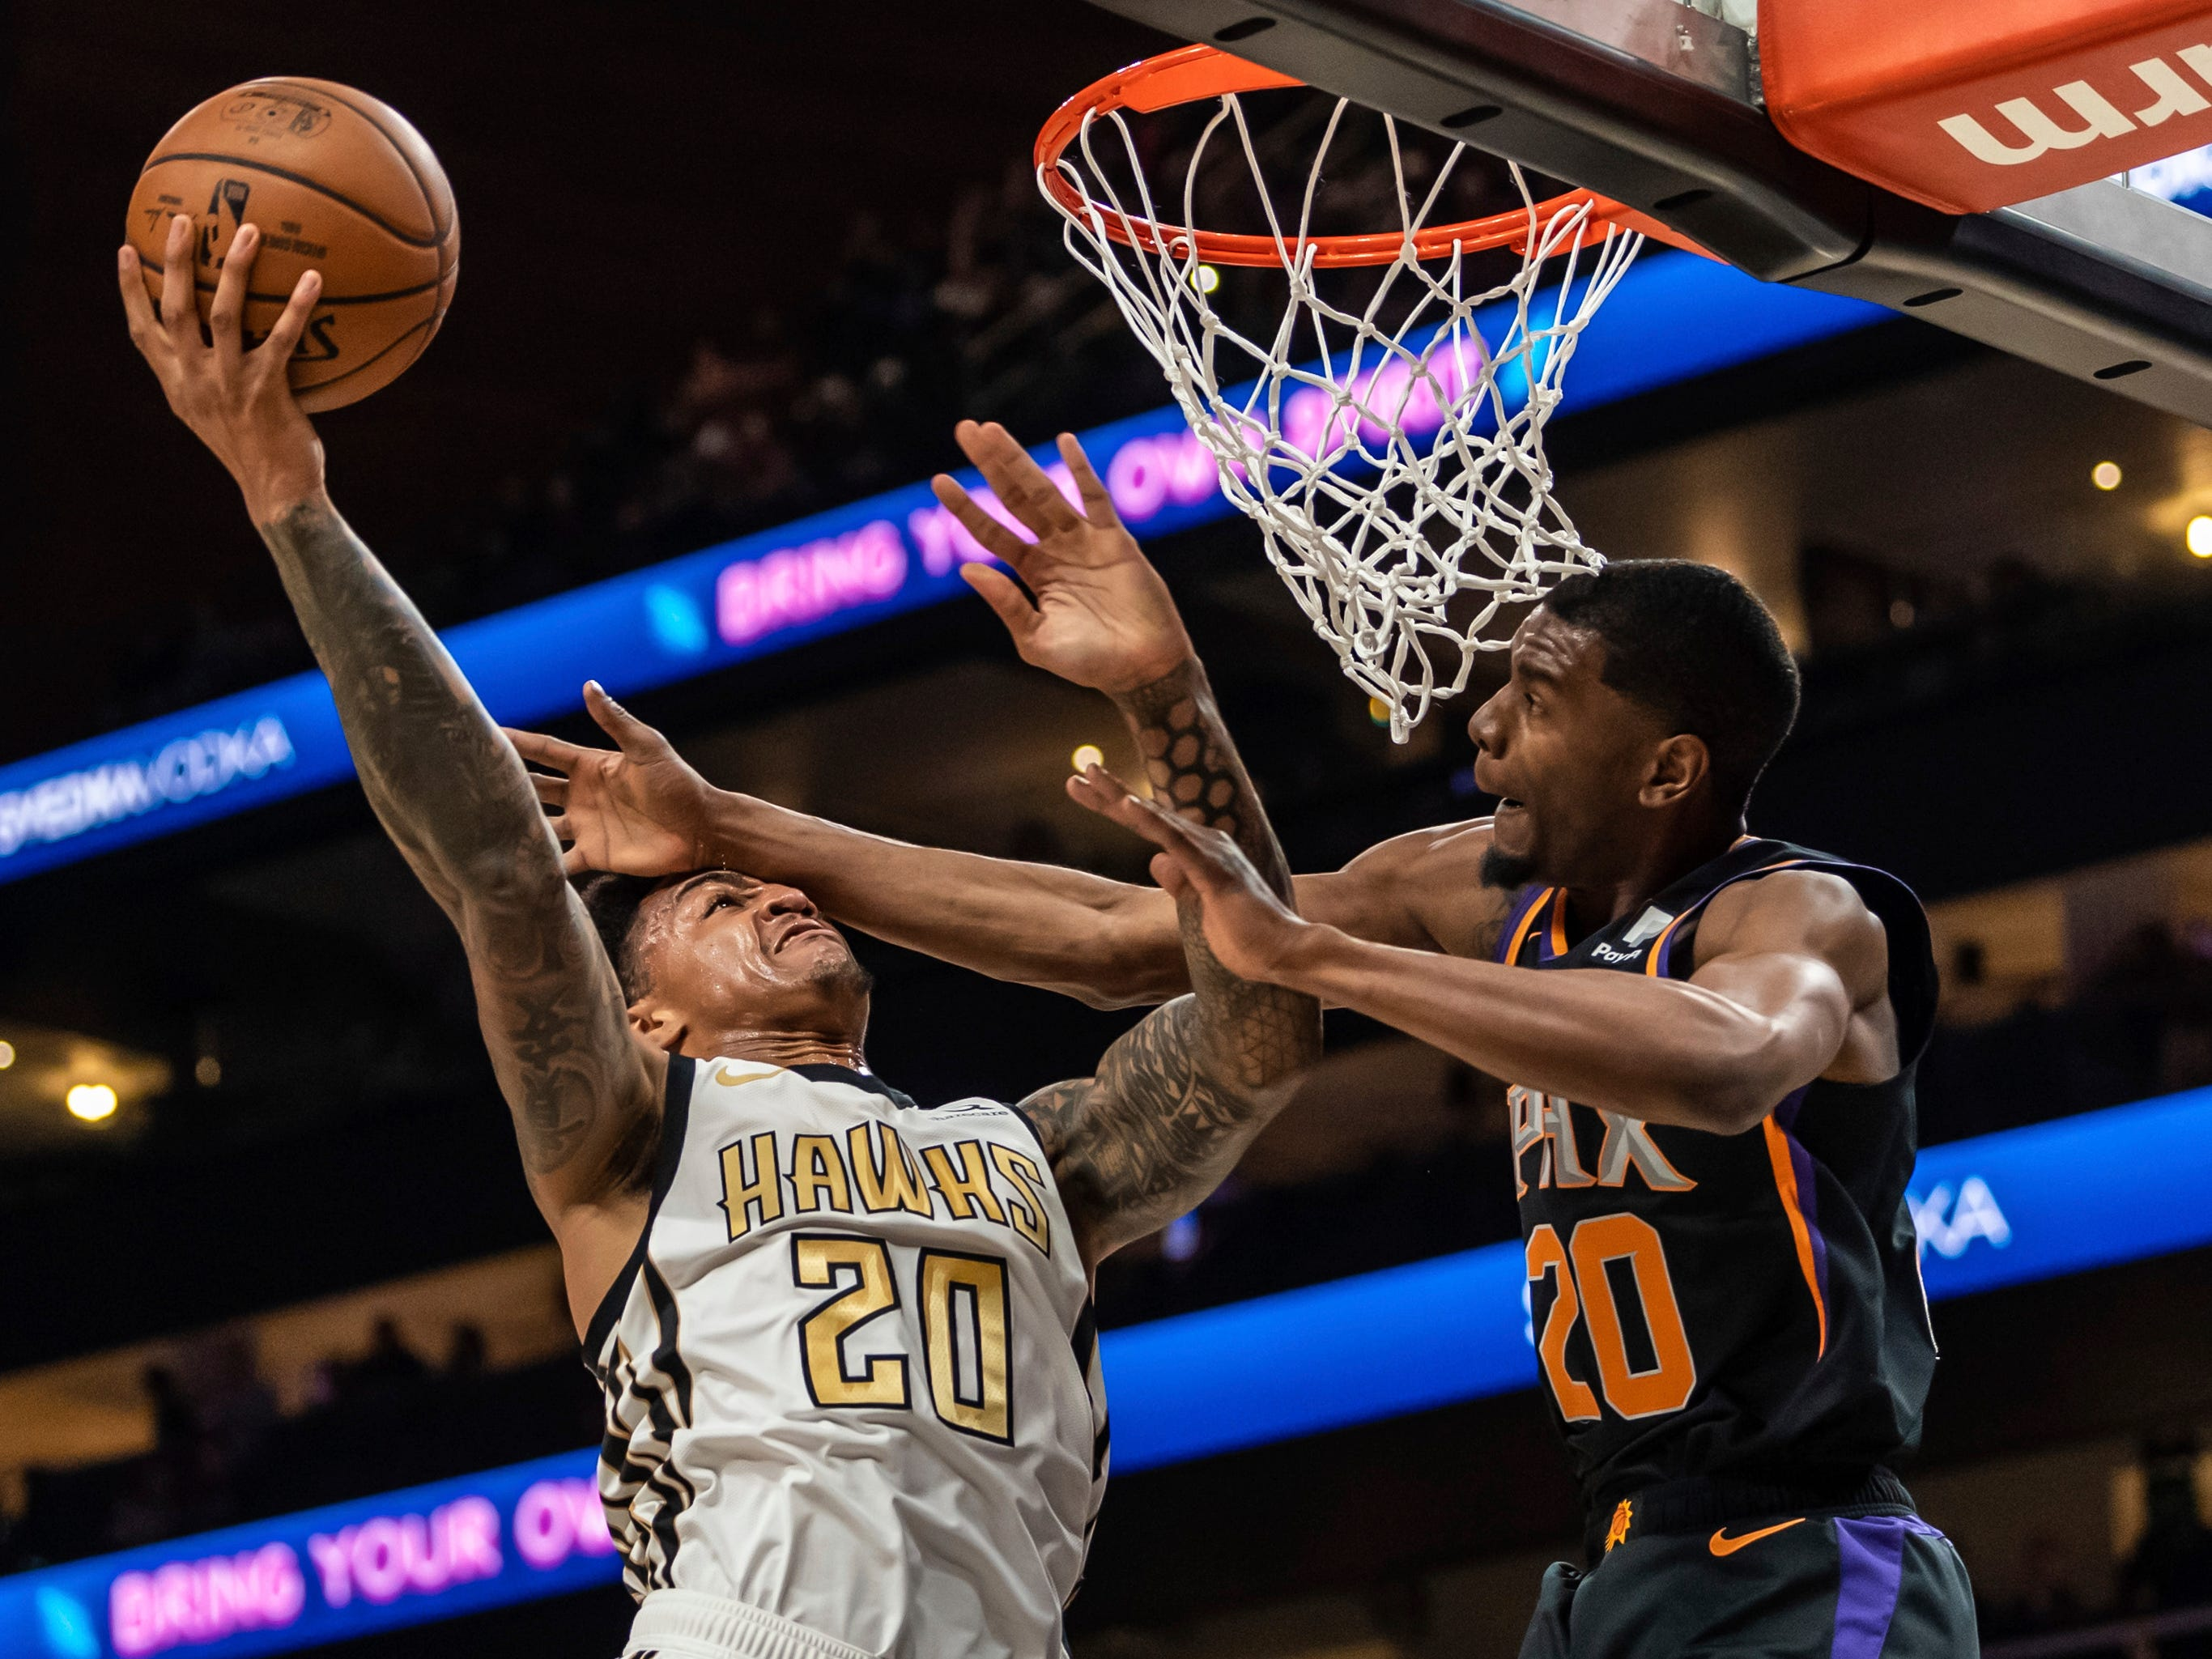 Atlanta Hawks forward John Collins (20) shoots as Phoenix Suns forward Josh Jackson (20) defends during the first half of an NBA basketball game Saturday, Feb. 23, 2019, in Atlanta.